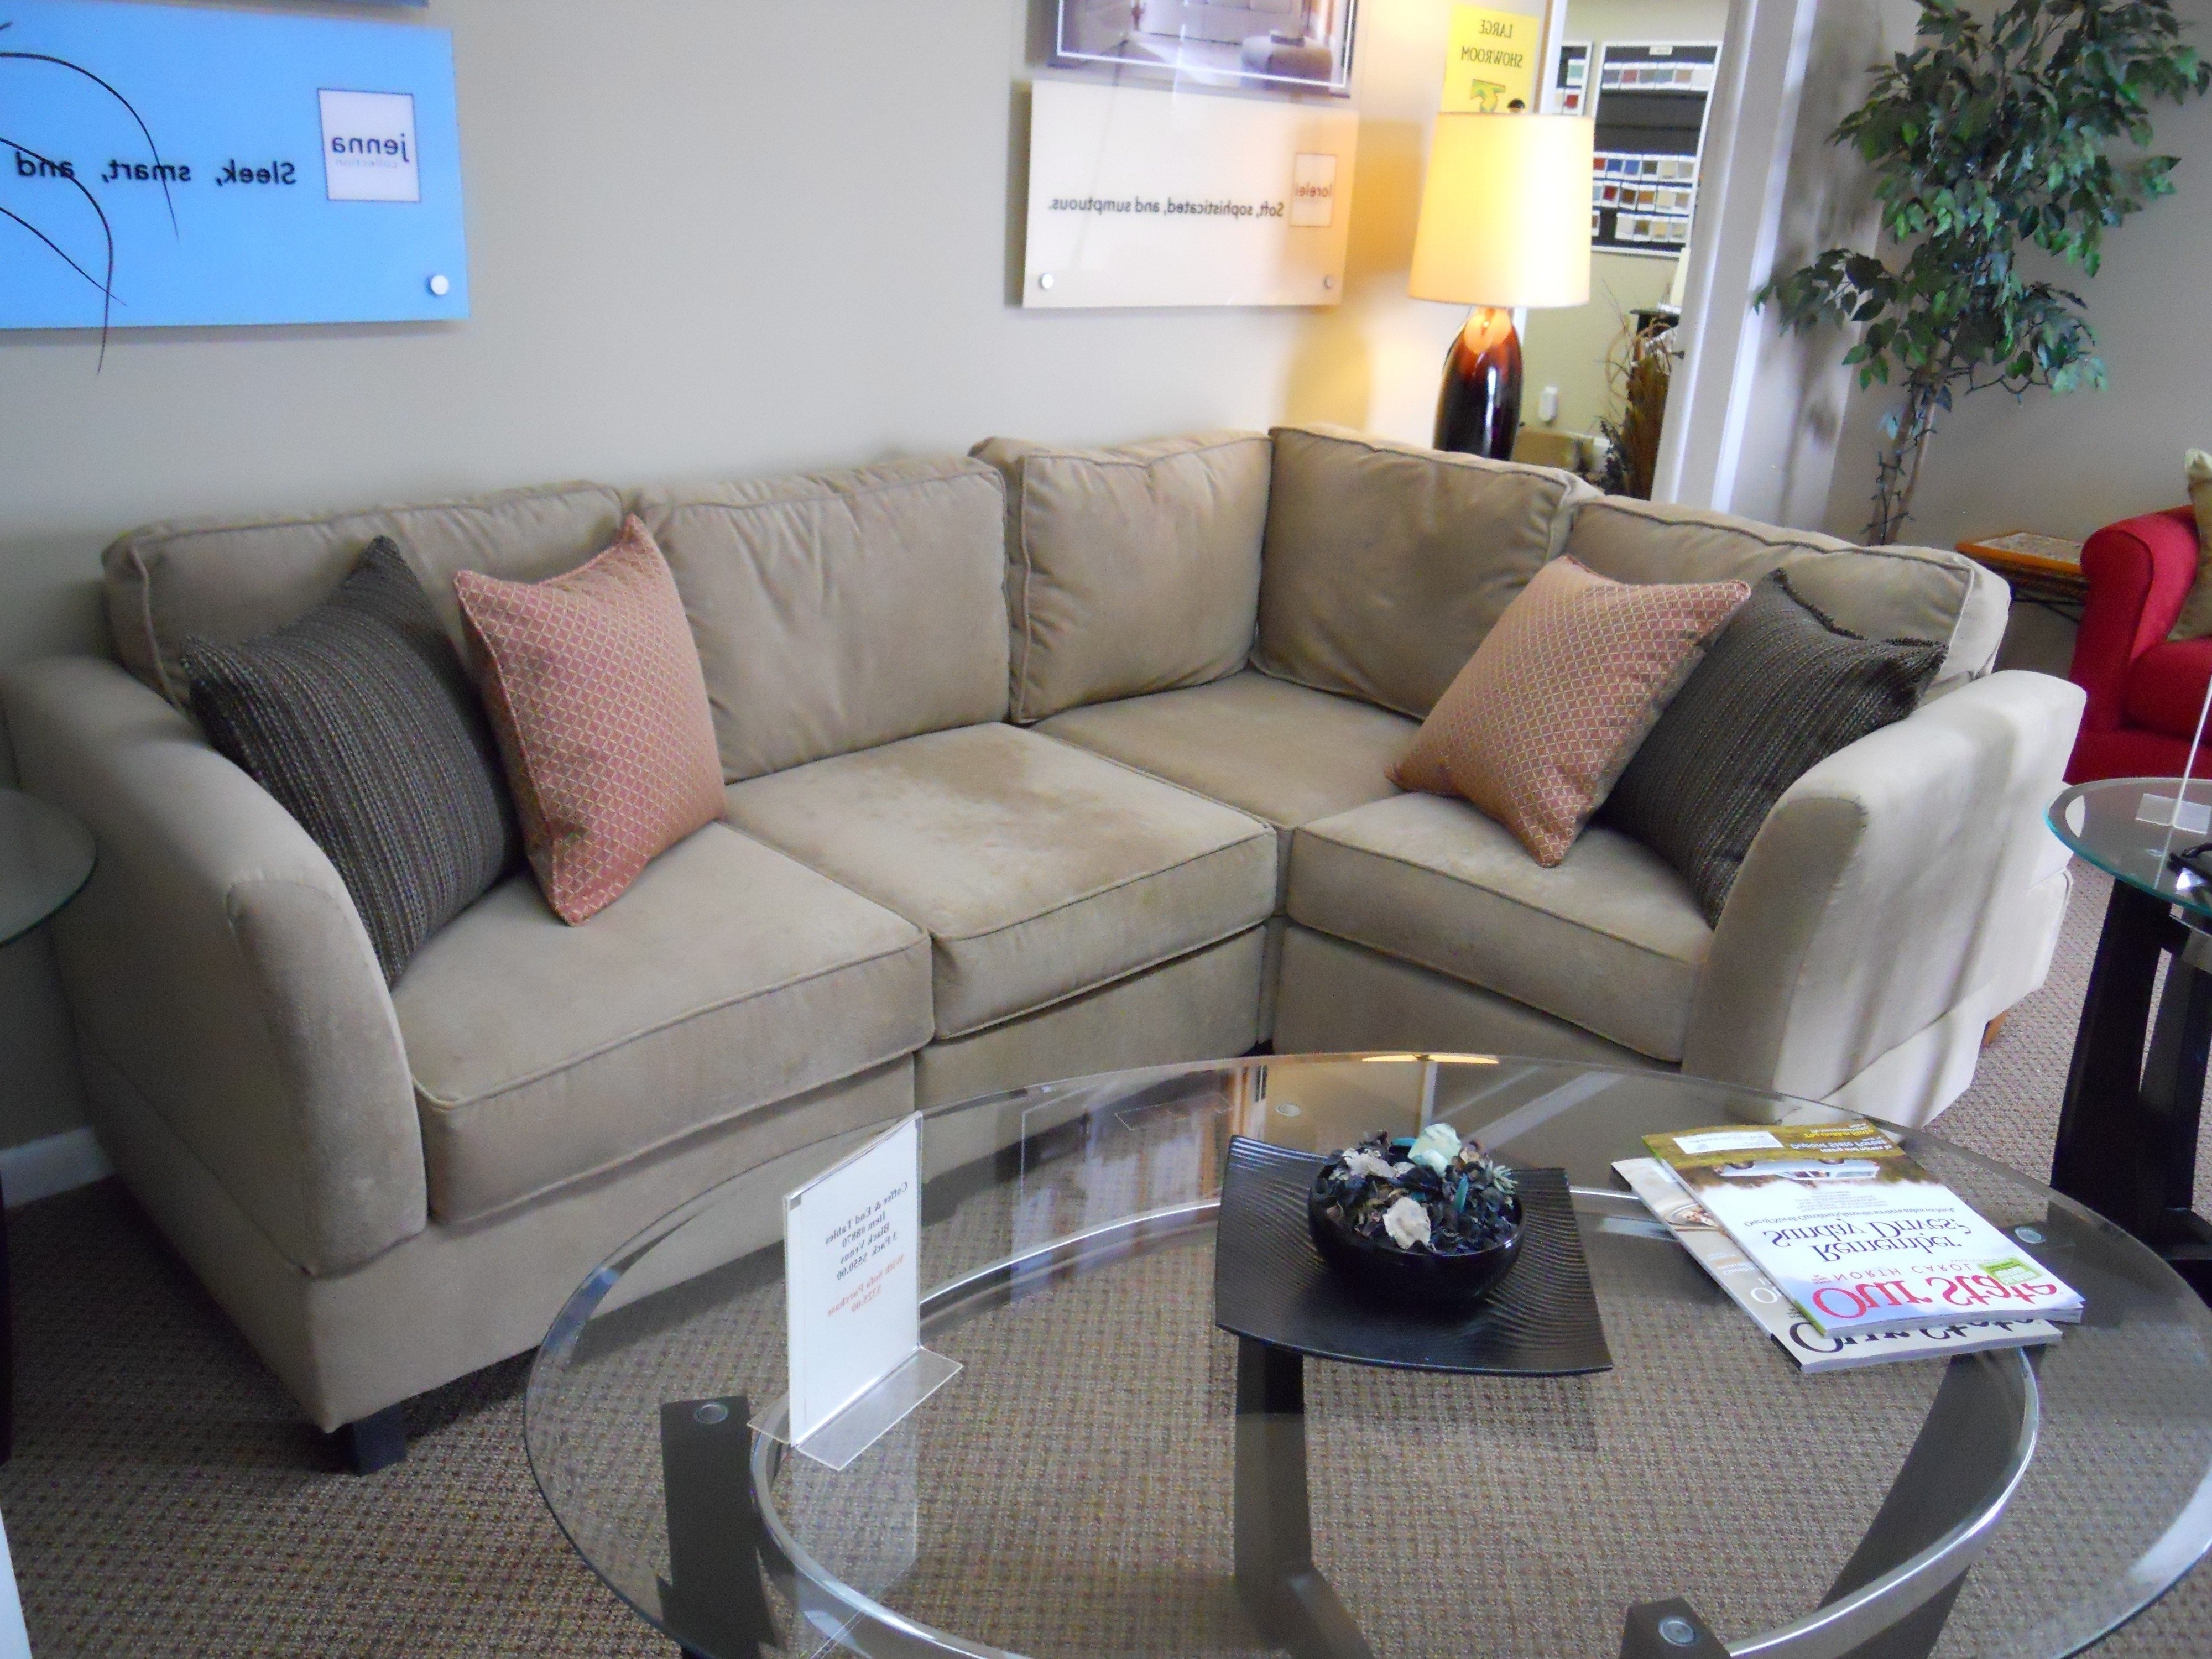 Small Sectional Sofas For Small Spaces Pertaining To Most Popular Reclining Sectional Sofas For Small Spaces W Script With Small (View 15 of 20)